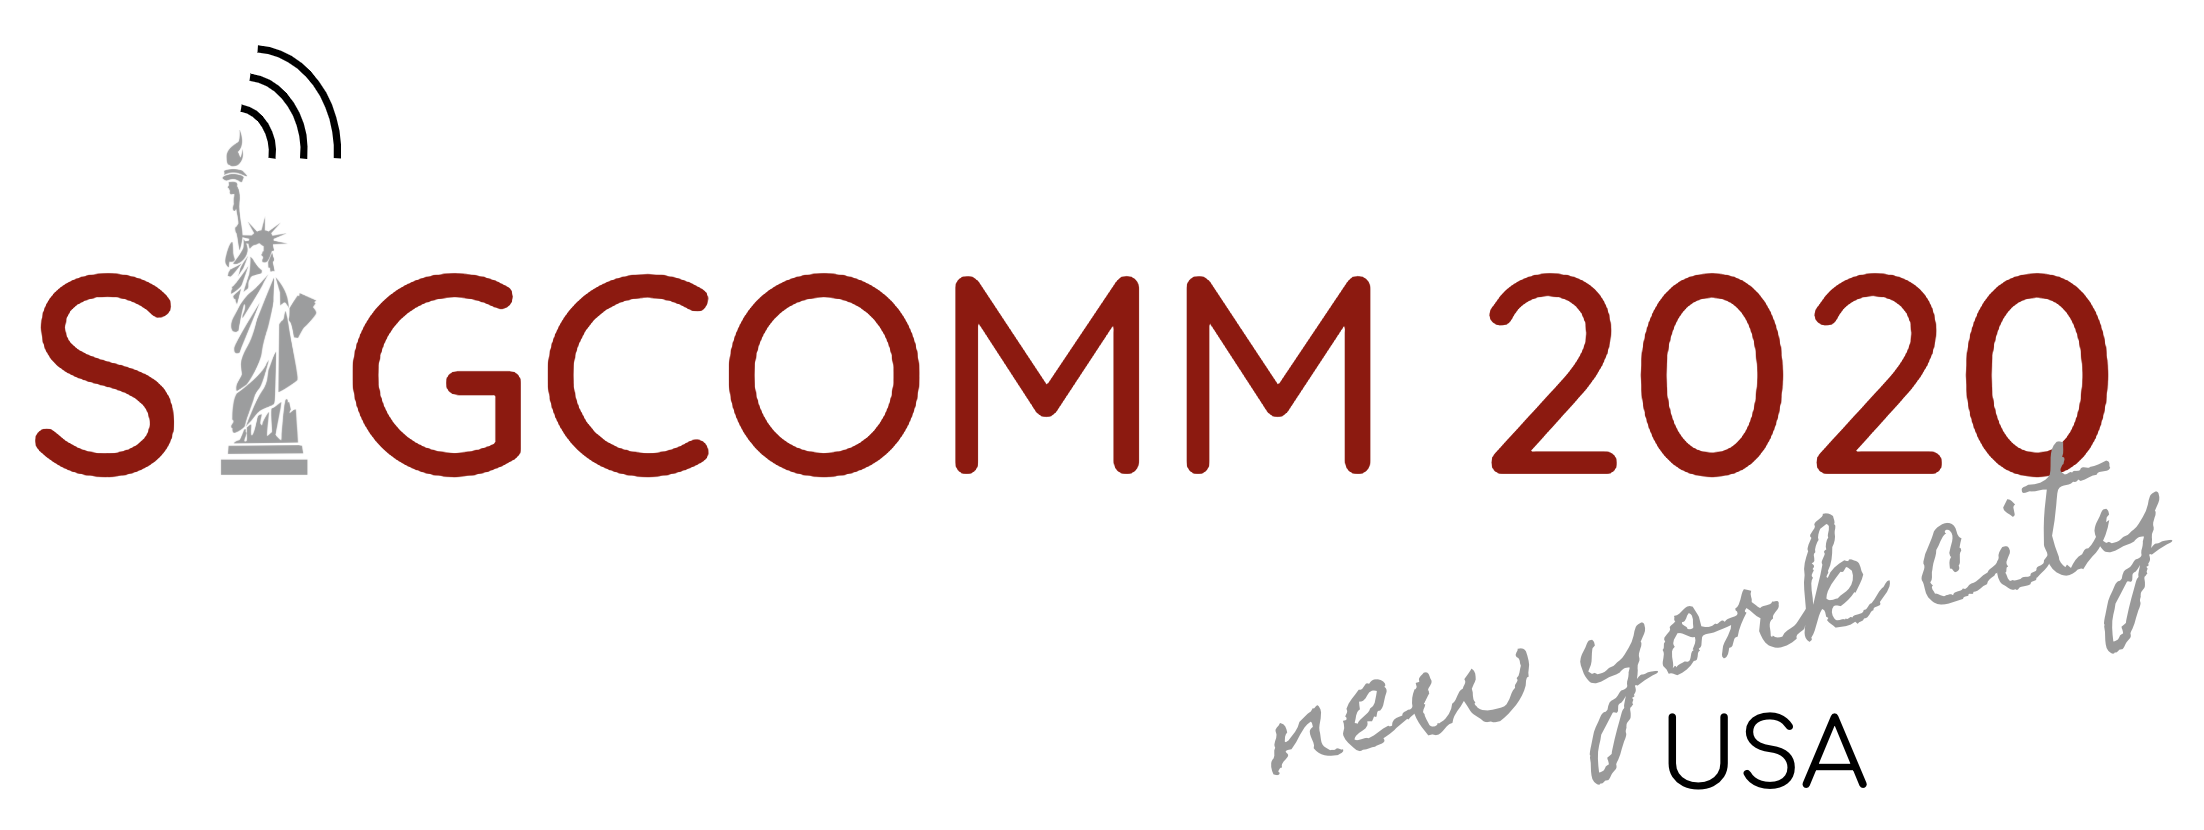 ACM SIGCOMM 2020, New York City, USA